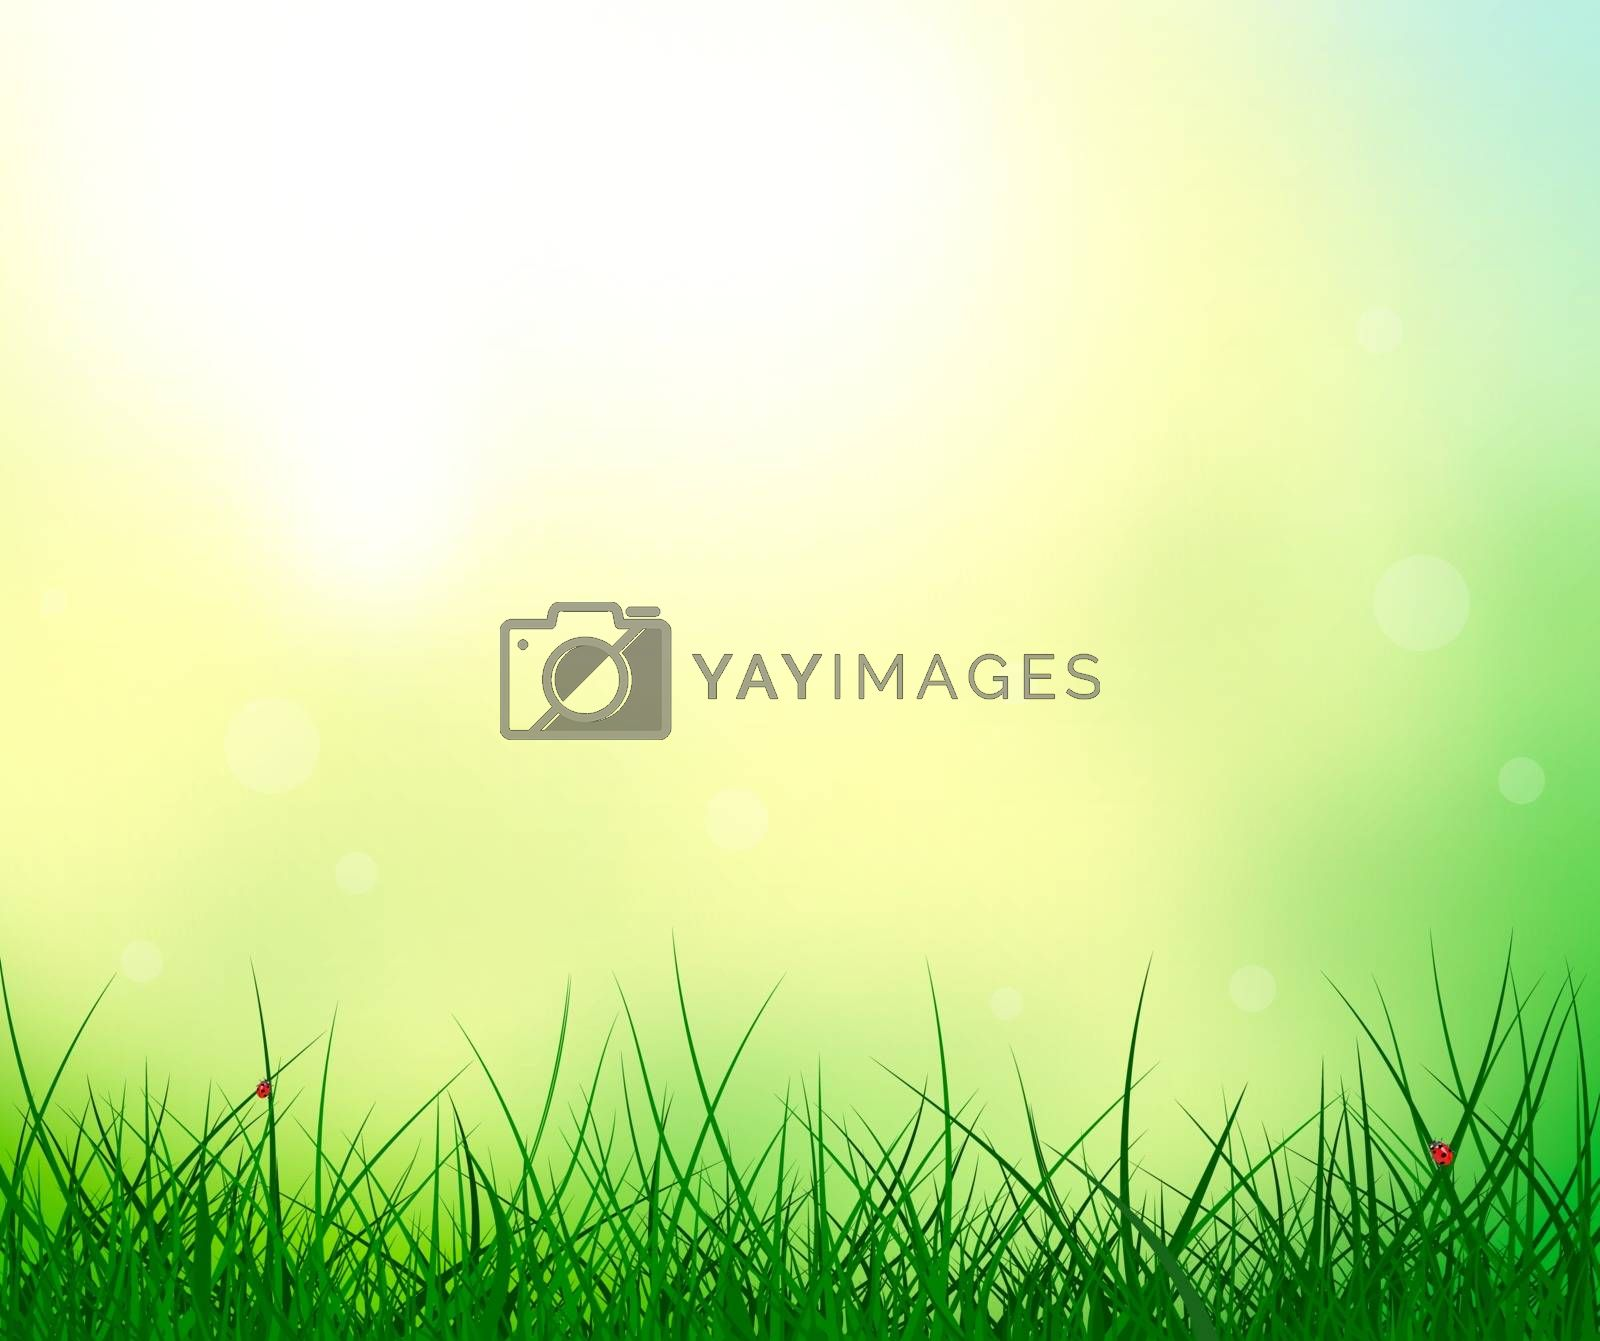 Abstract summer background. Grass on sunshine background. Ladybug on the grass. Nature scene, details.